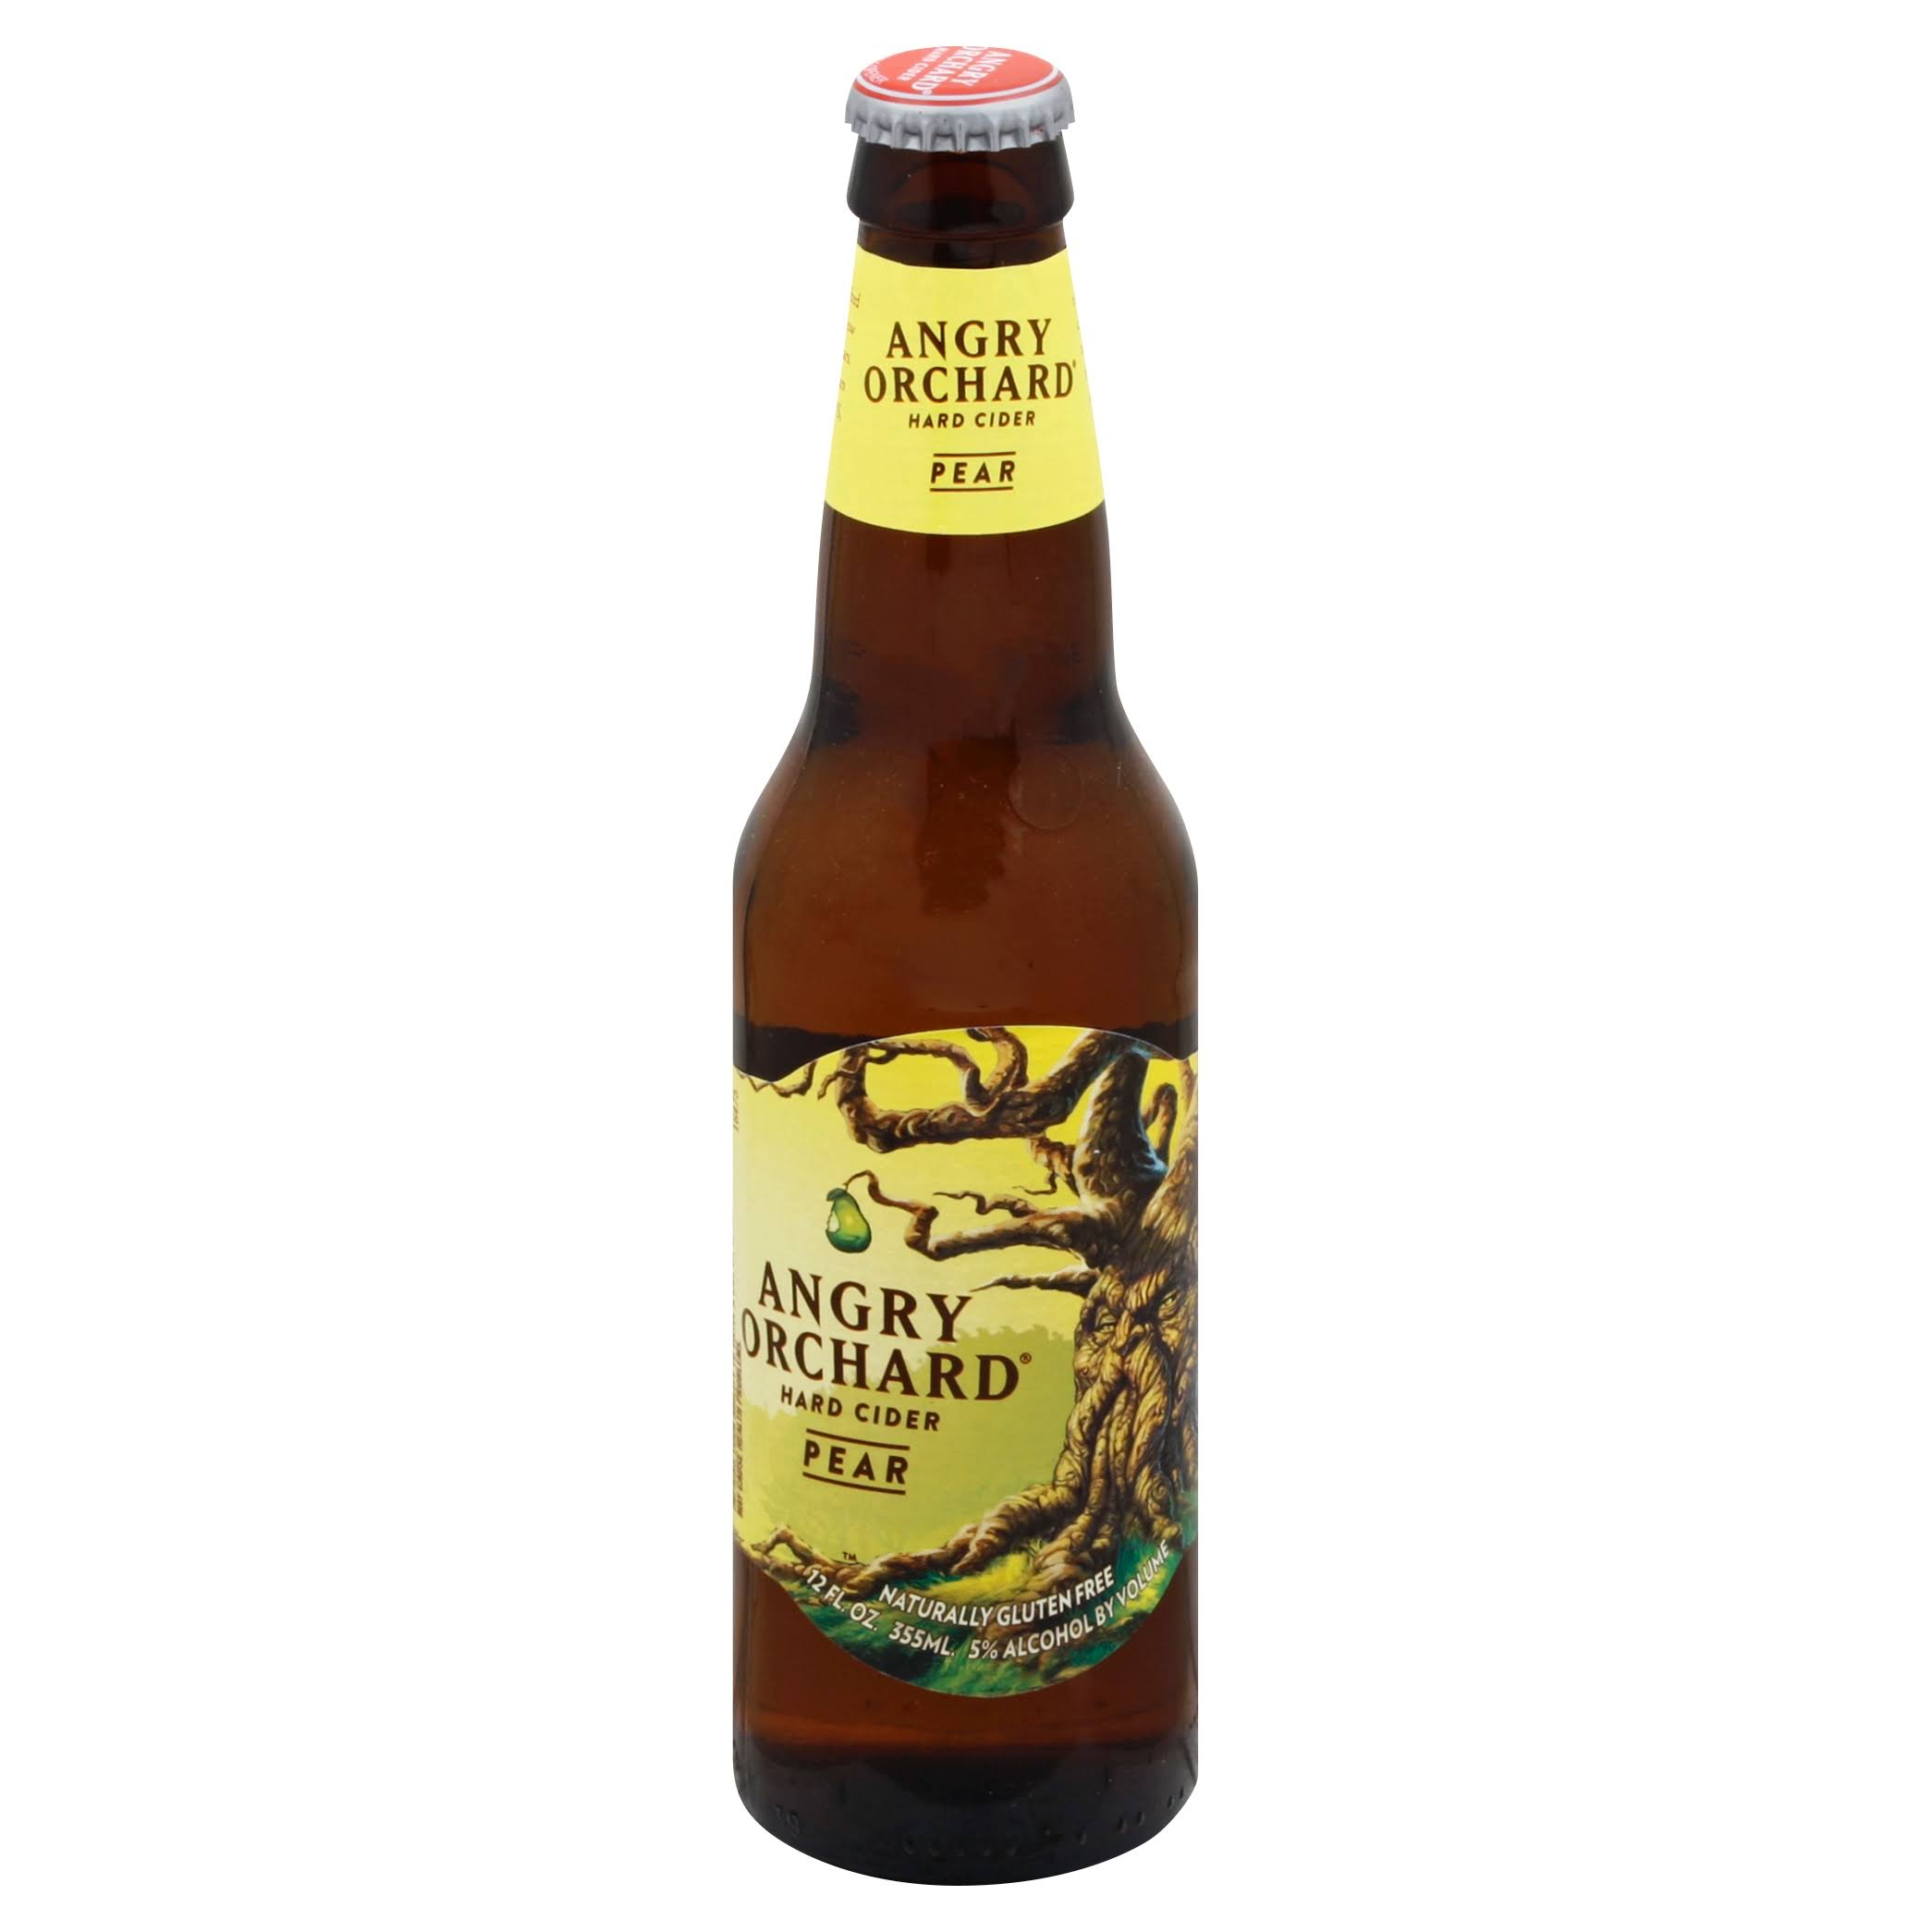 Angry Orchard Beer, Hard Cider, Pear - 12 fl oz